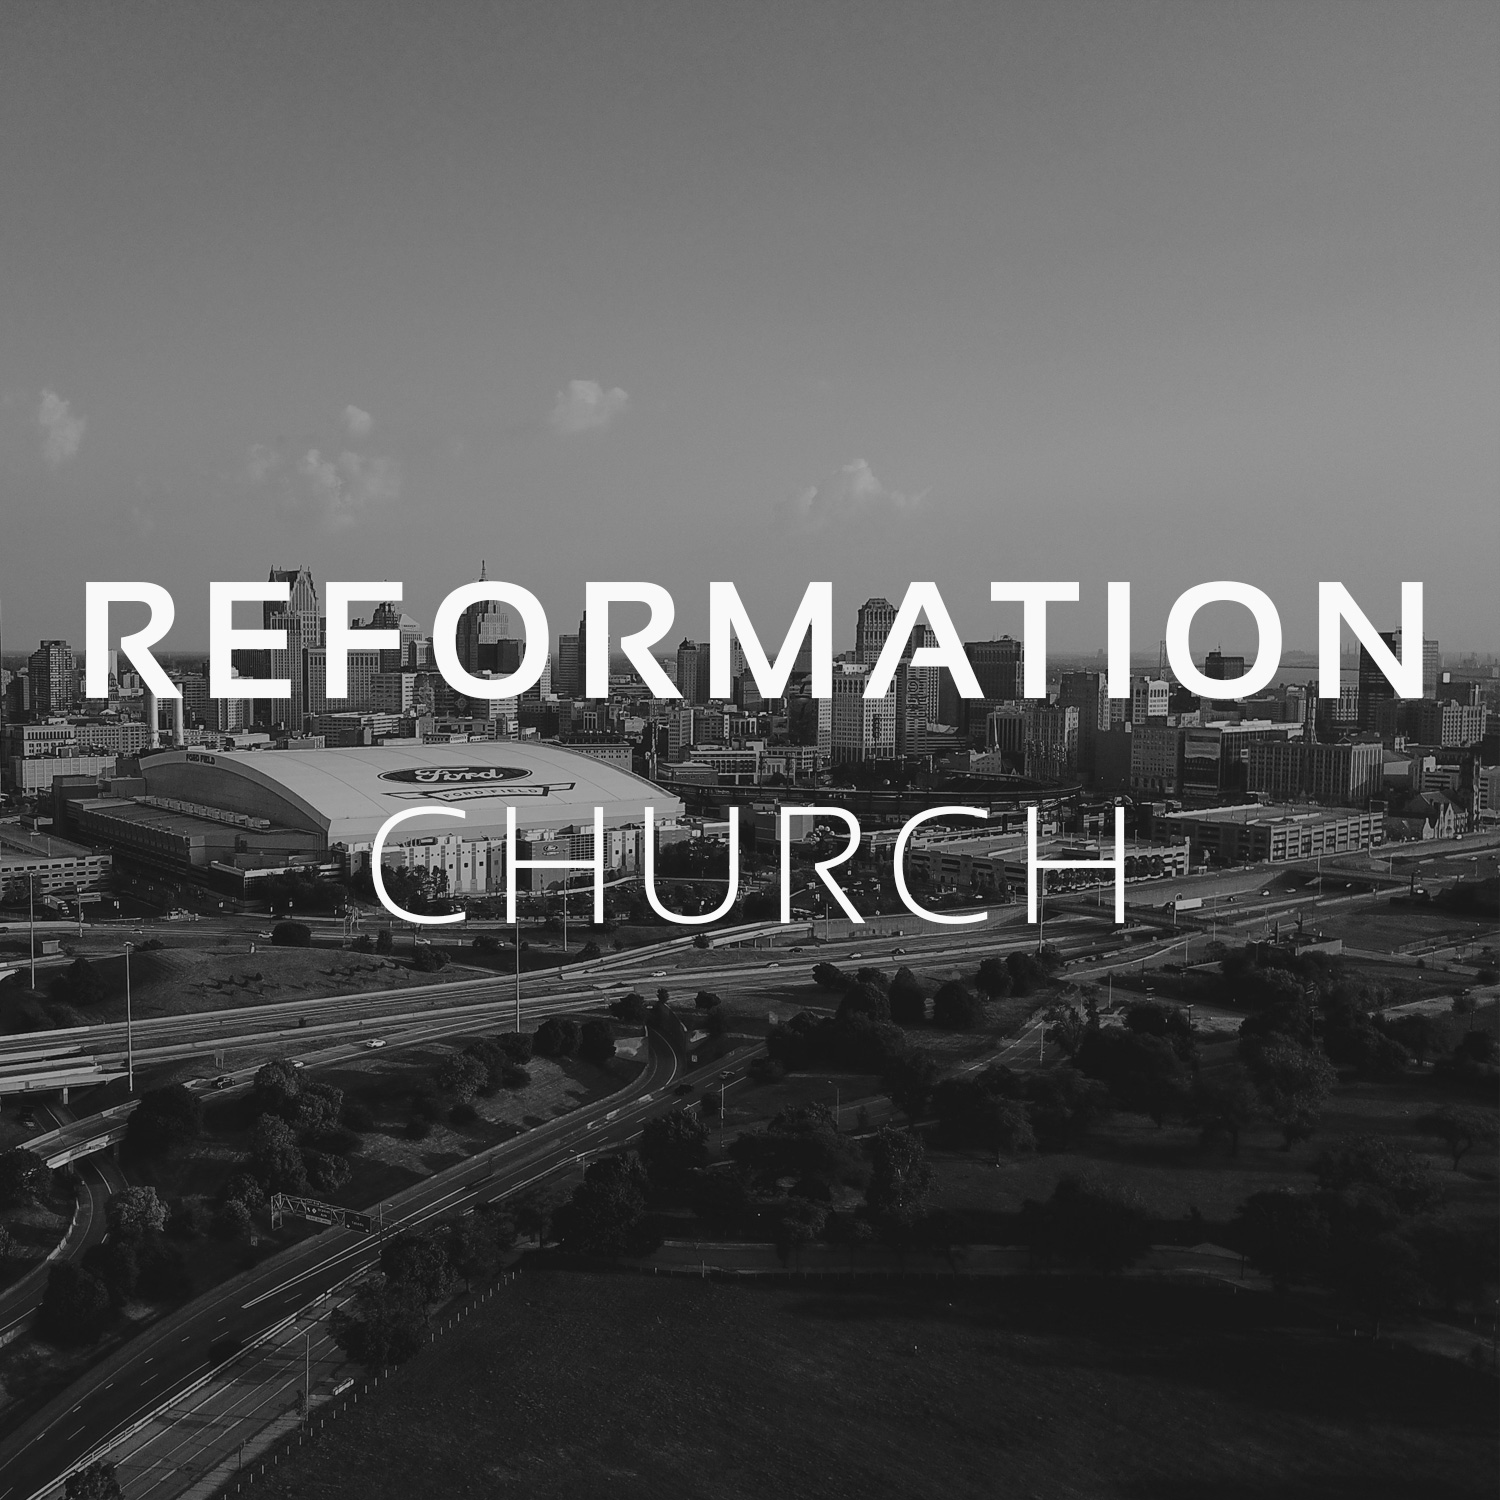 "Reformation Church is a new plant in what some have called the ""red zone"", an extremely poor section of Detroit, MI. Their lead pastor, Malcolm Griswold, was saved out of a similar context growing up in inner-city Kansas City, MO, and feels called to take the gospel to the 48205."